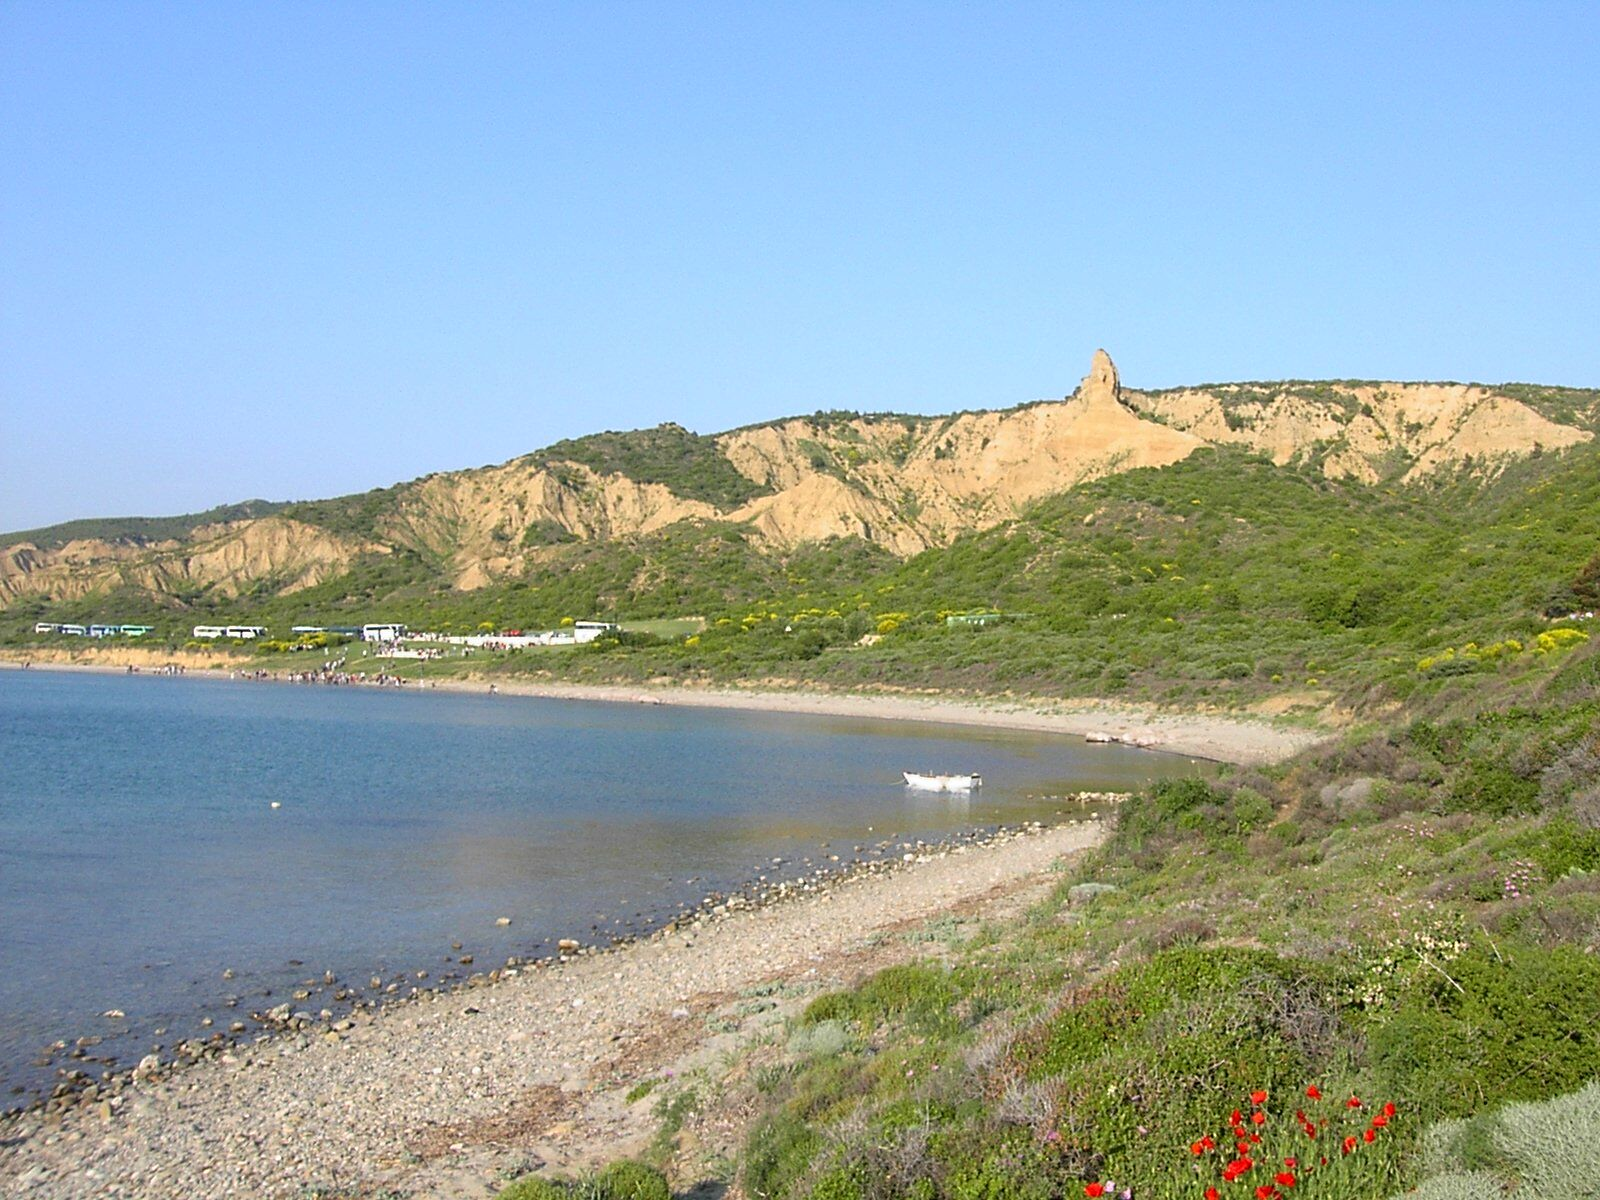 https://i1.wp.com/upload.wikimedia.org/wikipedia/commons/d/da/Ac.gallipoli1.jpg